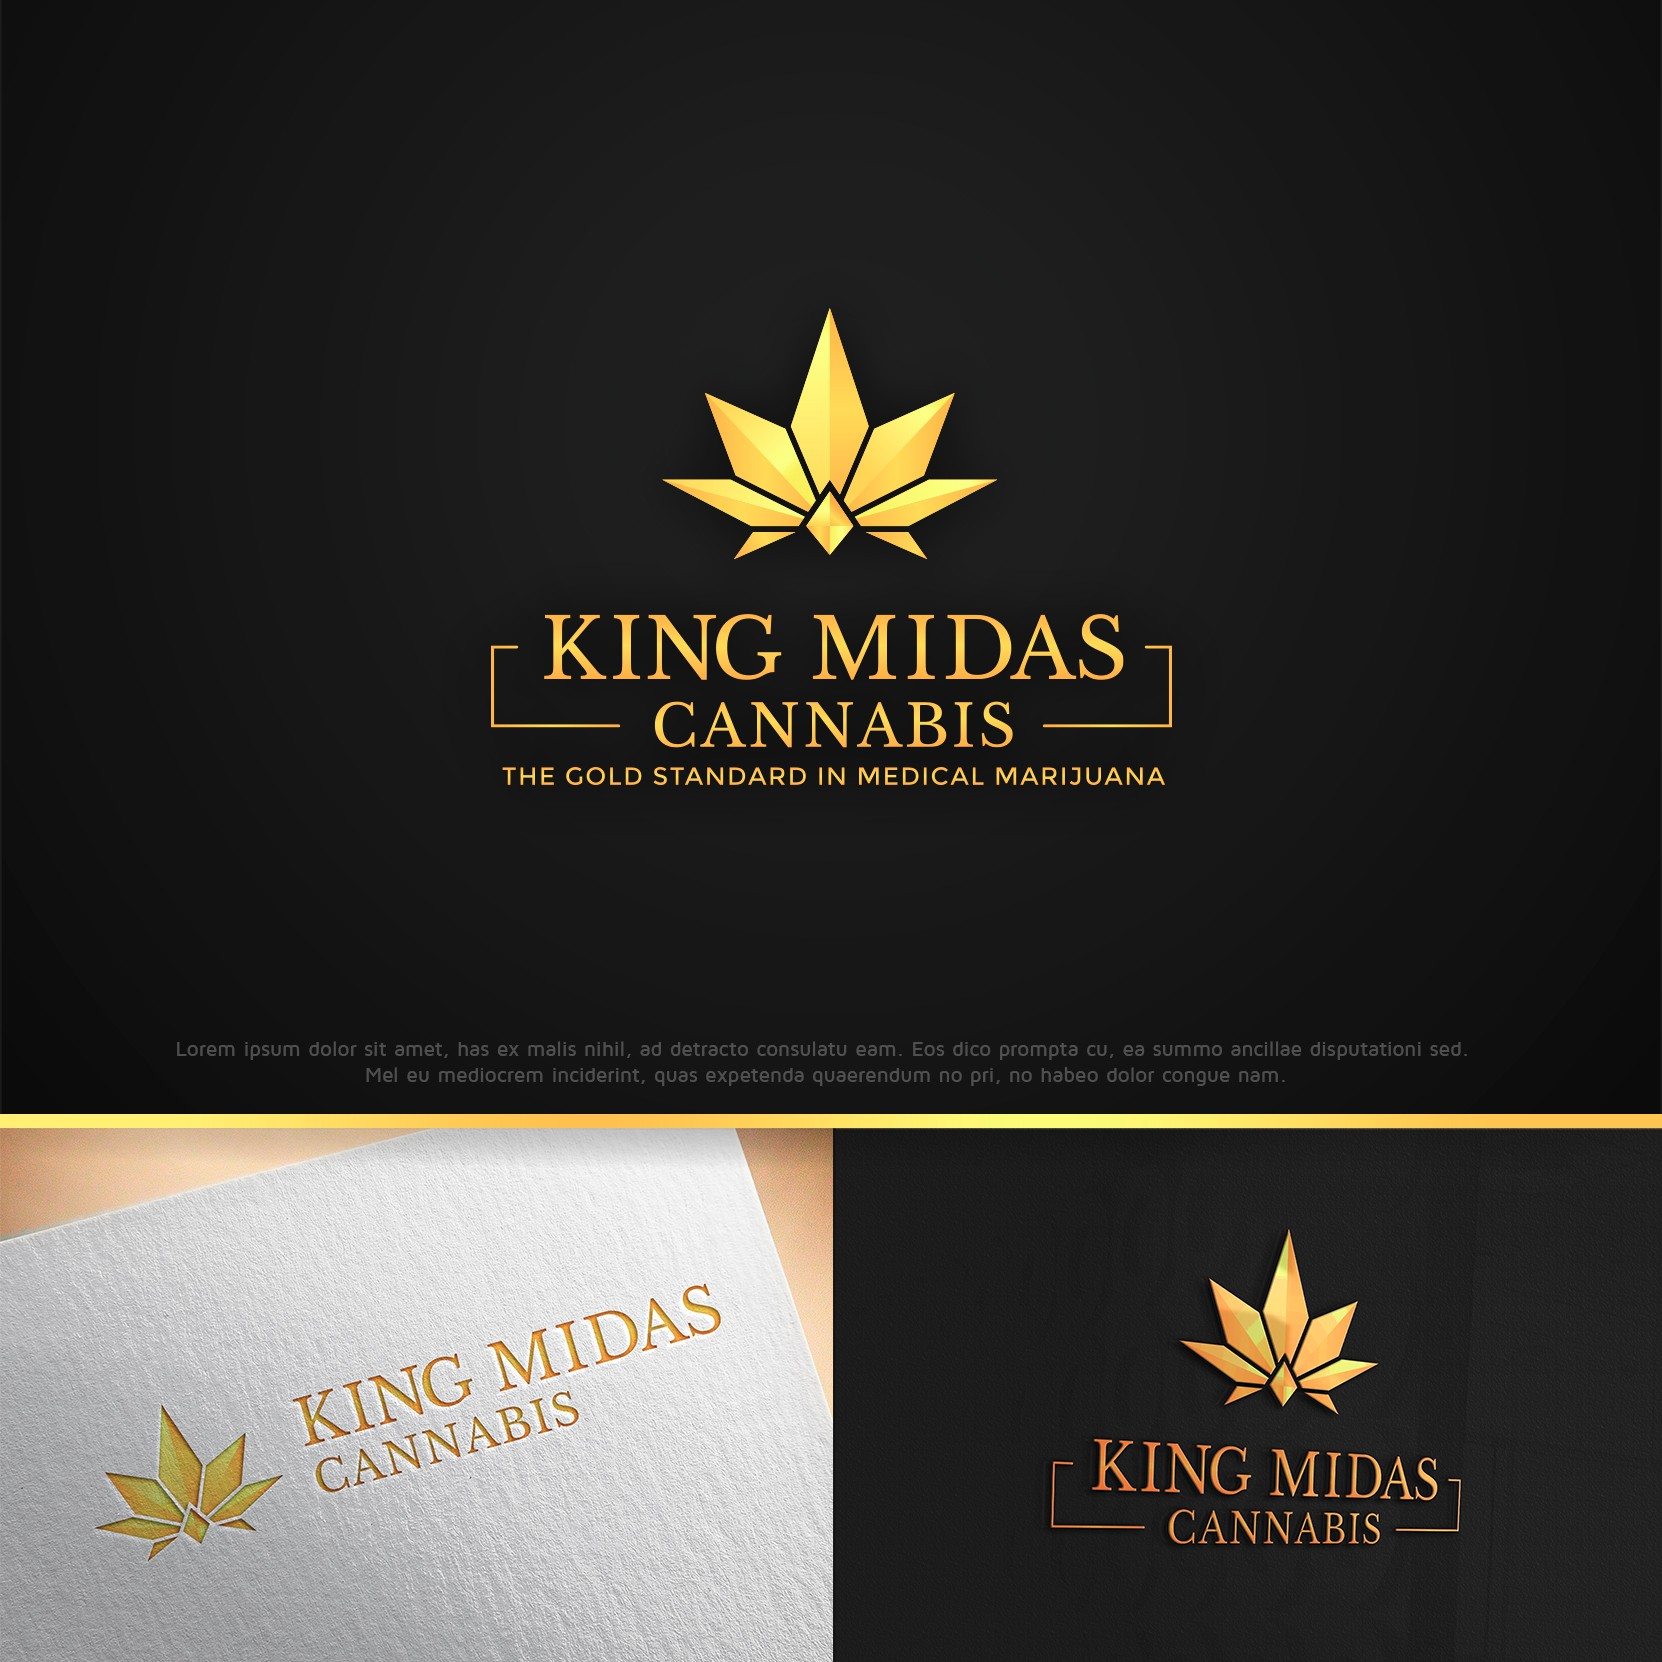 Create an industry leading logo for King Midas Cannabis